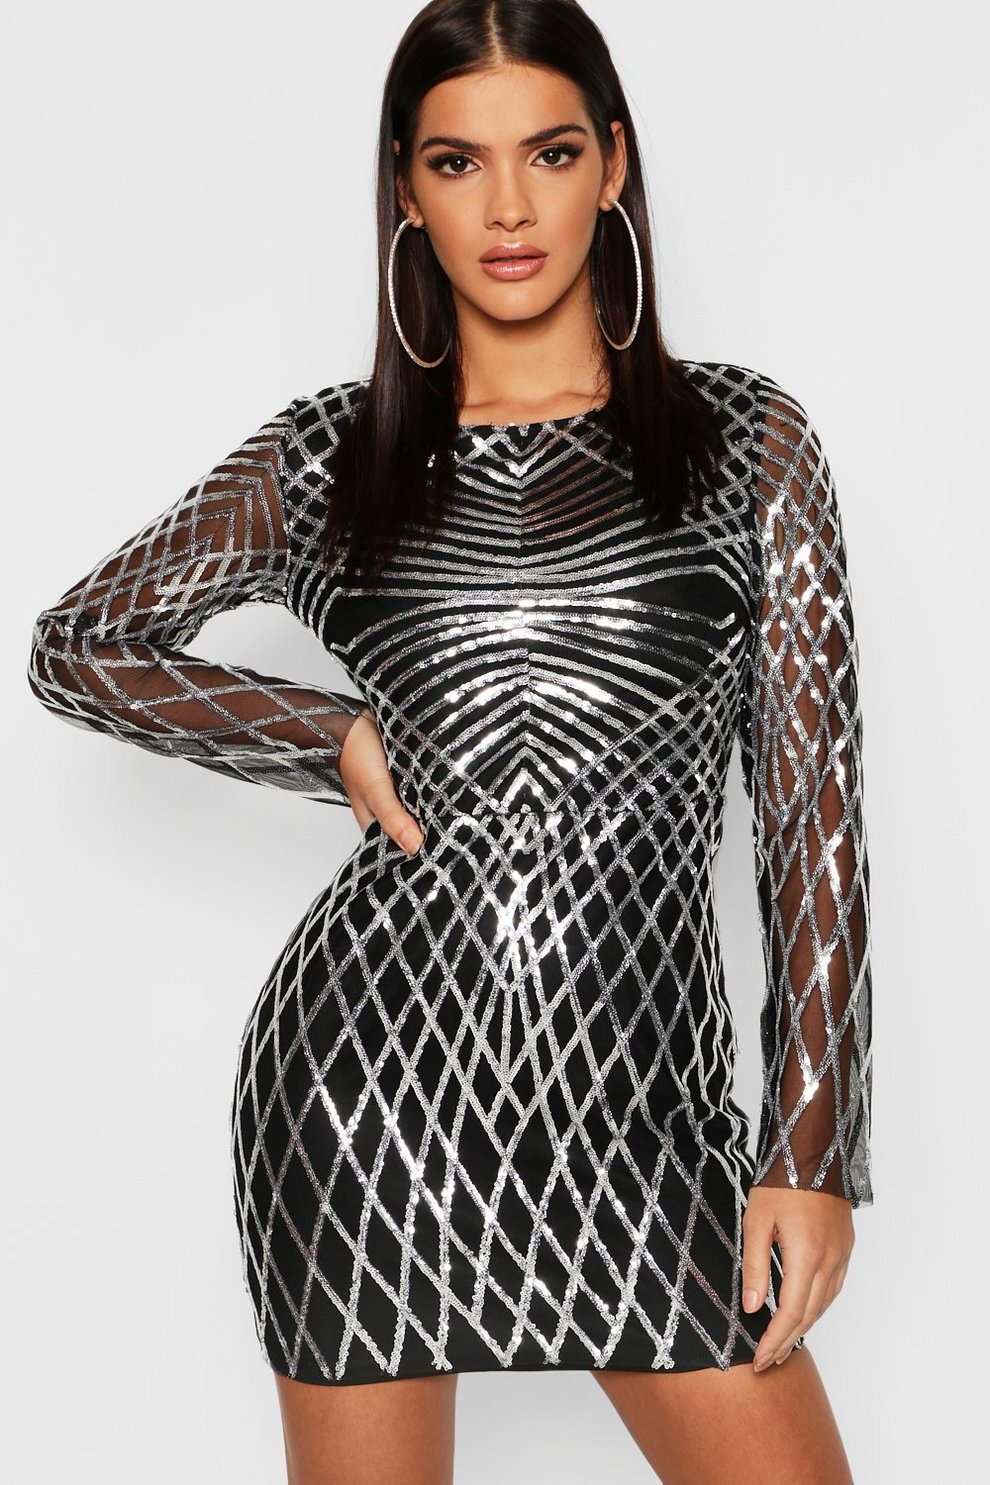 bff0342cbd0d Sequin Mesh Long Sleeve Bodycon Dress